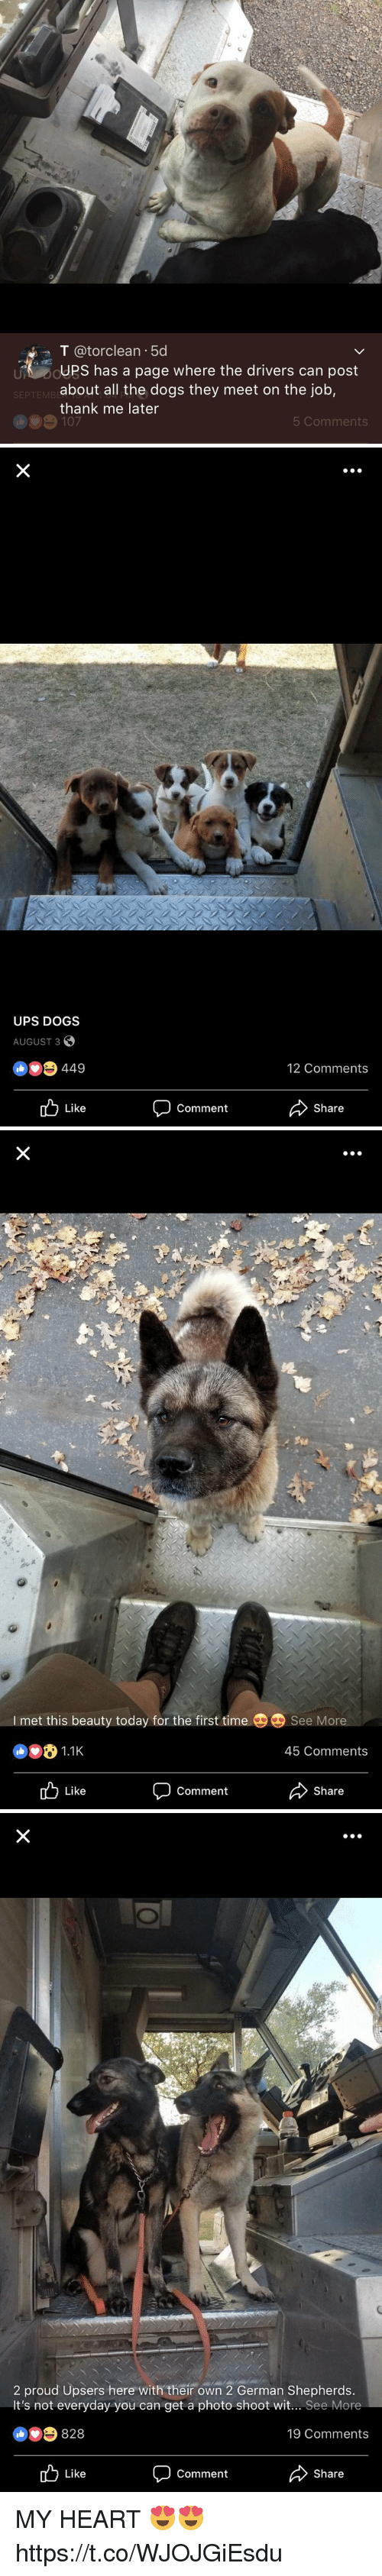 Dogs, Ups, and Heart: T atorclean .5d  UPS has a page where the drivers can post  about all the dogs they meet on the job,  thank me later  107  SEPTEMB  5 Comments   UPS DOGS  AUGUST 3S  449  12 Comments  Like  Comment  Share   I met this beauty today for the first time  See More  1.1K  45 Comments  Like  Comment  Share   2 proud Upsers here with their own 2 German Shepherds.  It's not everyday you can get a photo shoot wit... See More  828  19 Comments  Like  Comment  Share MY HEART 😍😍 https://t.co/WJOJGiEsdu